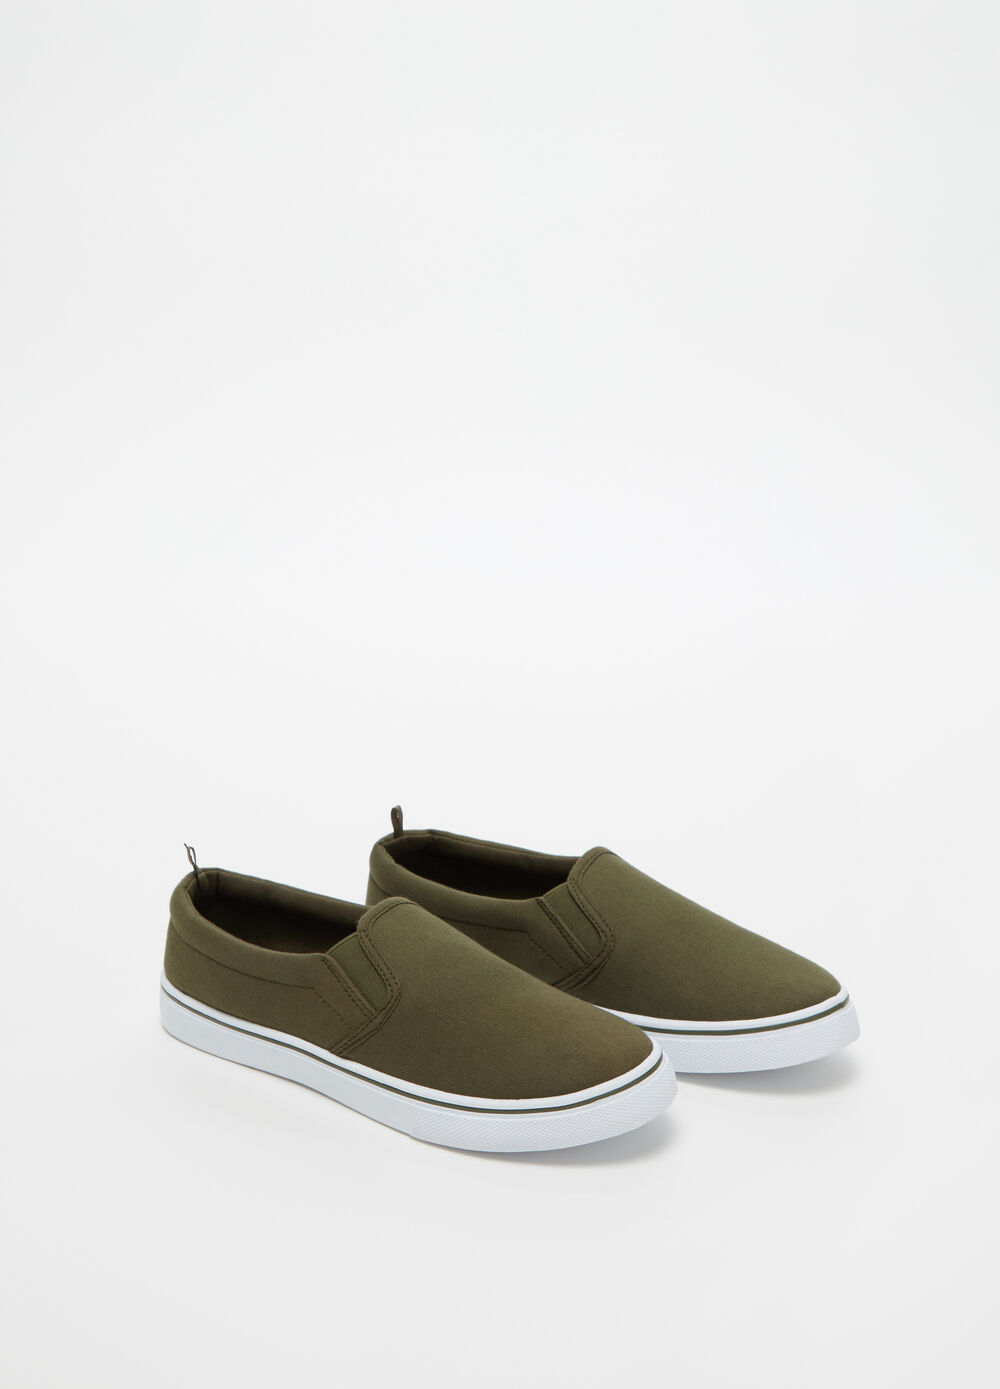 Solid colour slip-ons with low sole